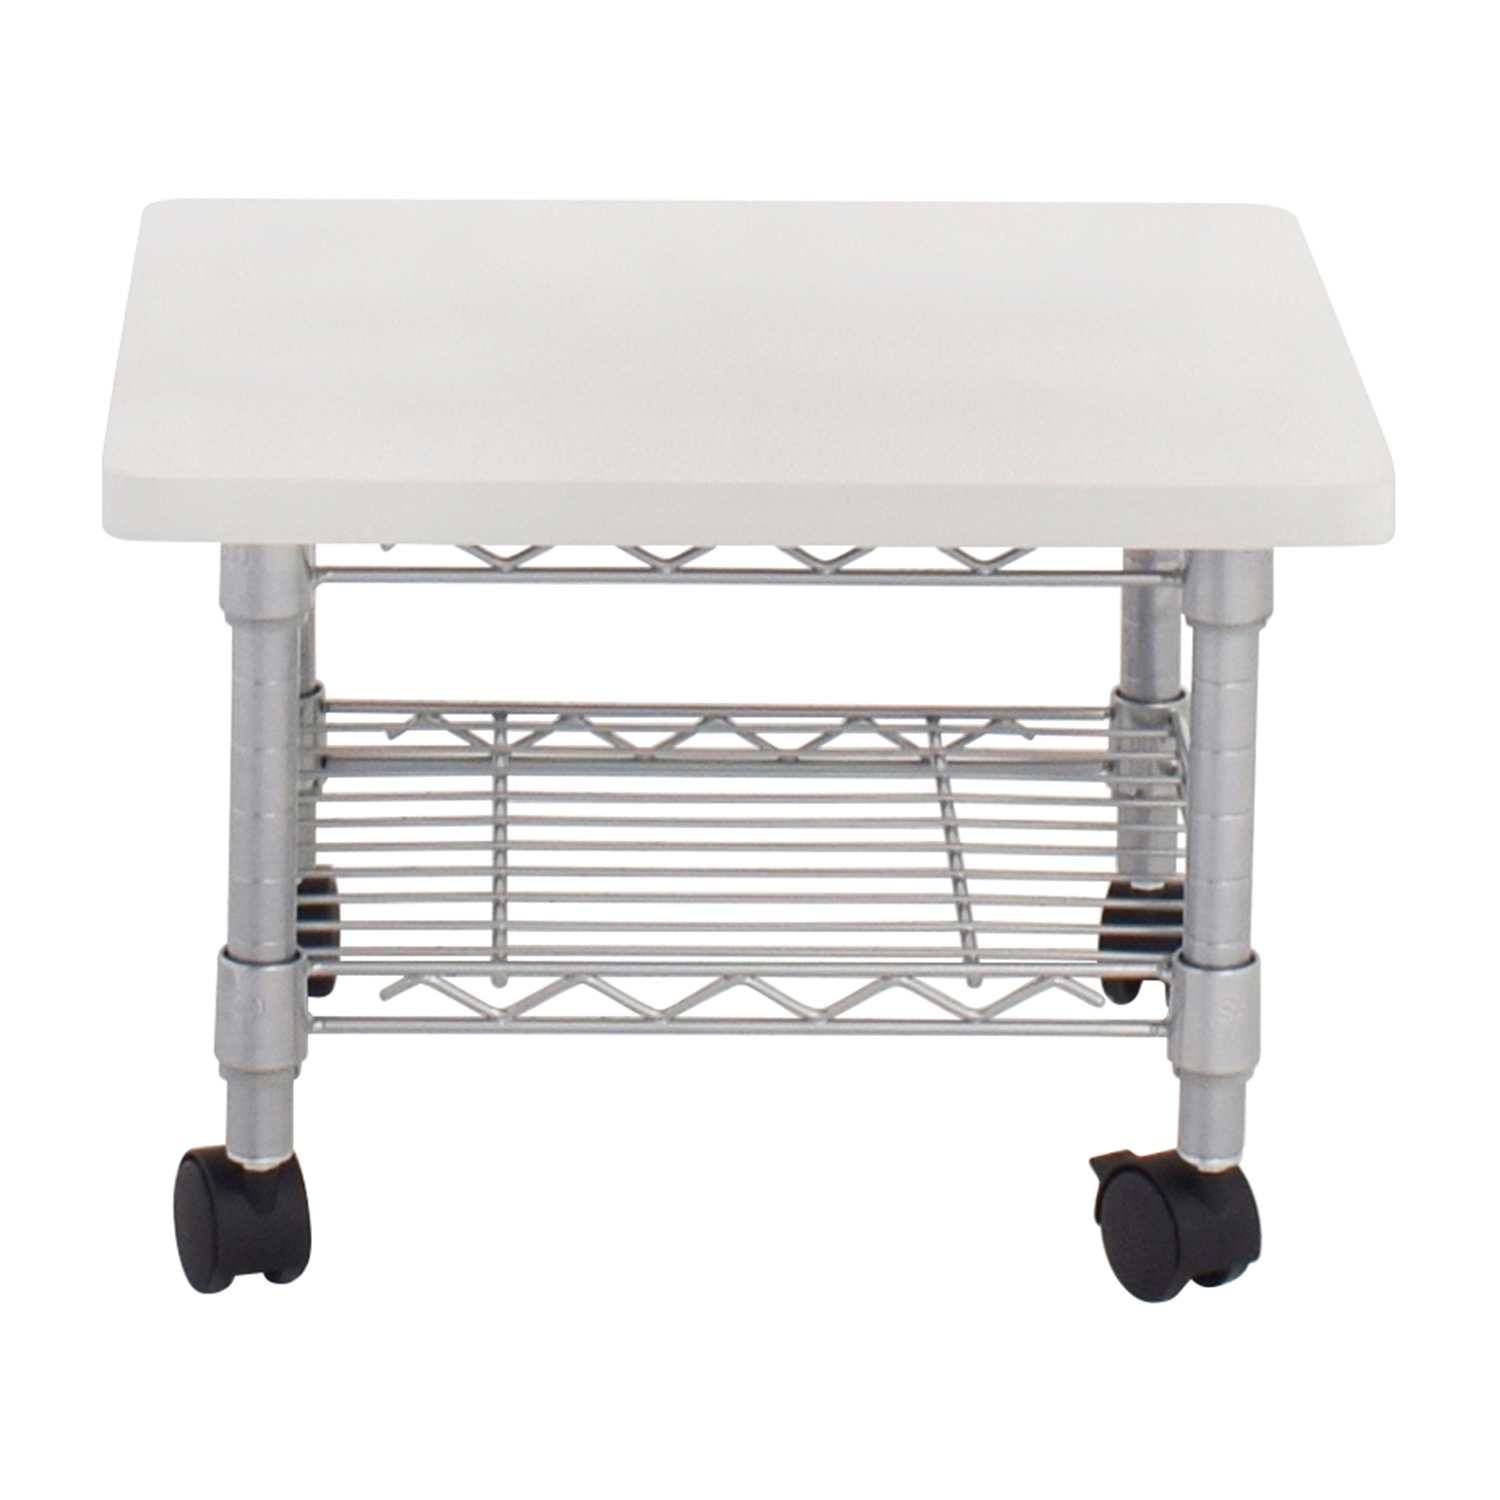 shop Safco Under Desk Printer Stand Safco Tables